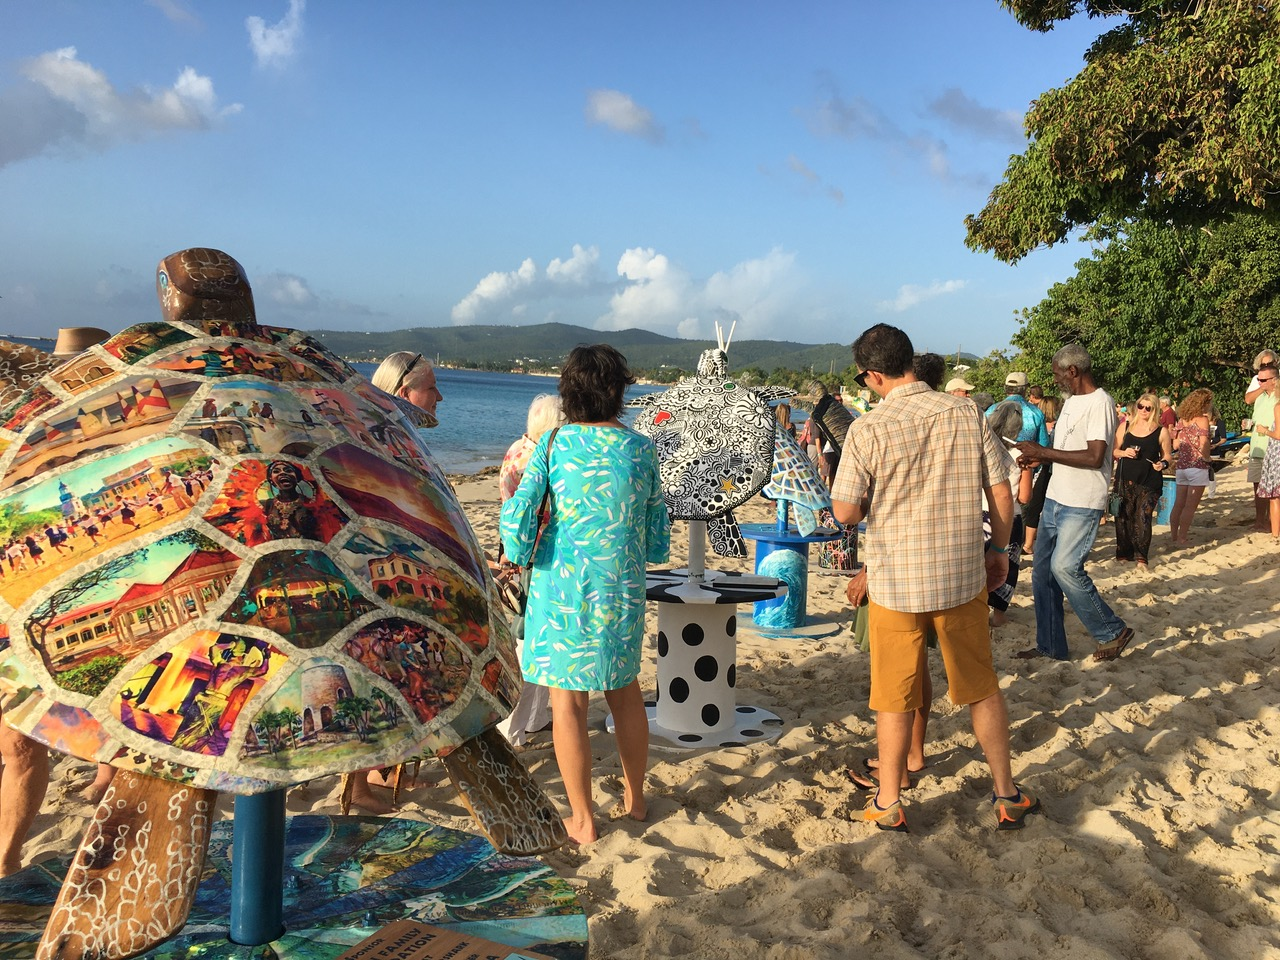 More than 200 people enjoyed the 'Turtle Hatching Saturday' on the beach at Sand Castles. (Source photo by Susan Ellis)